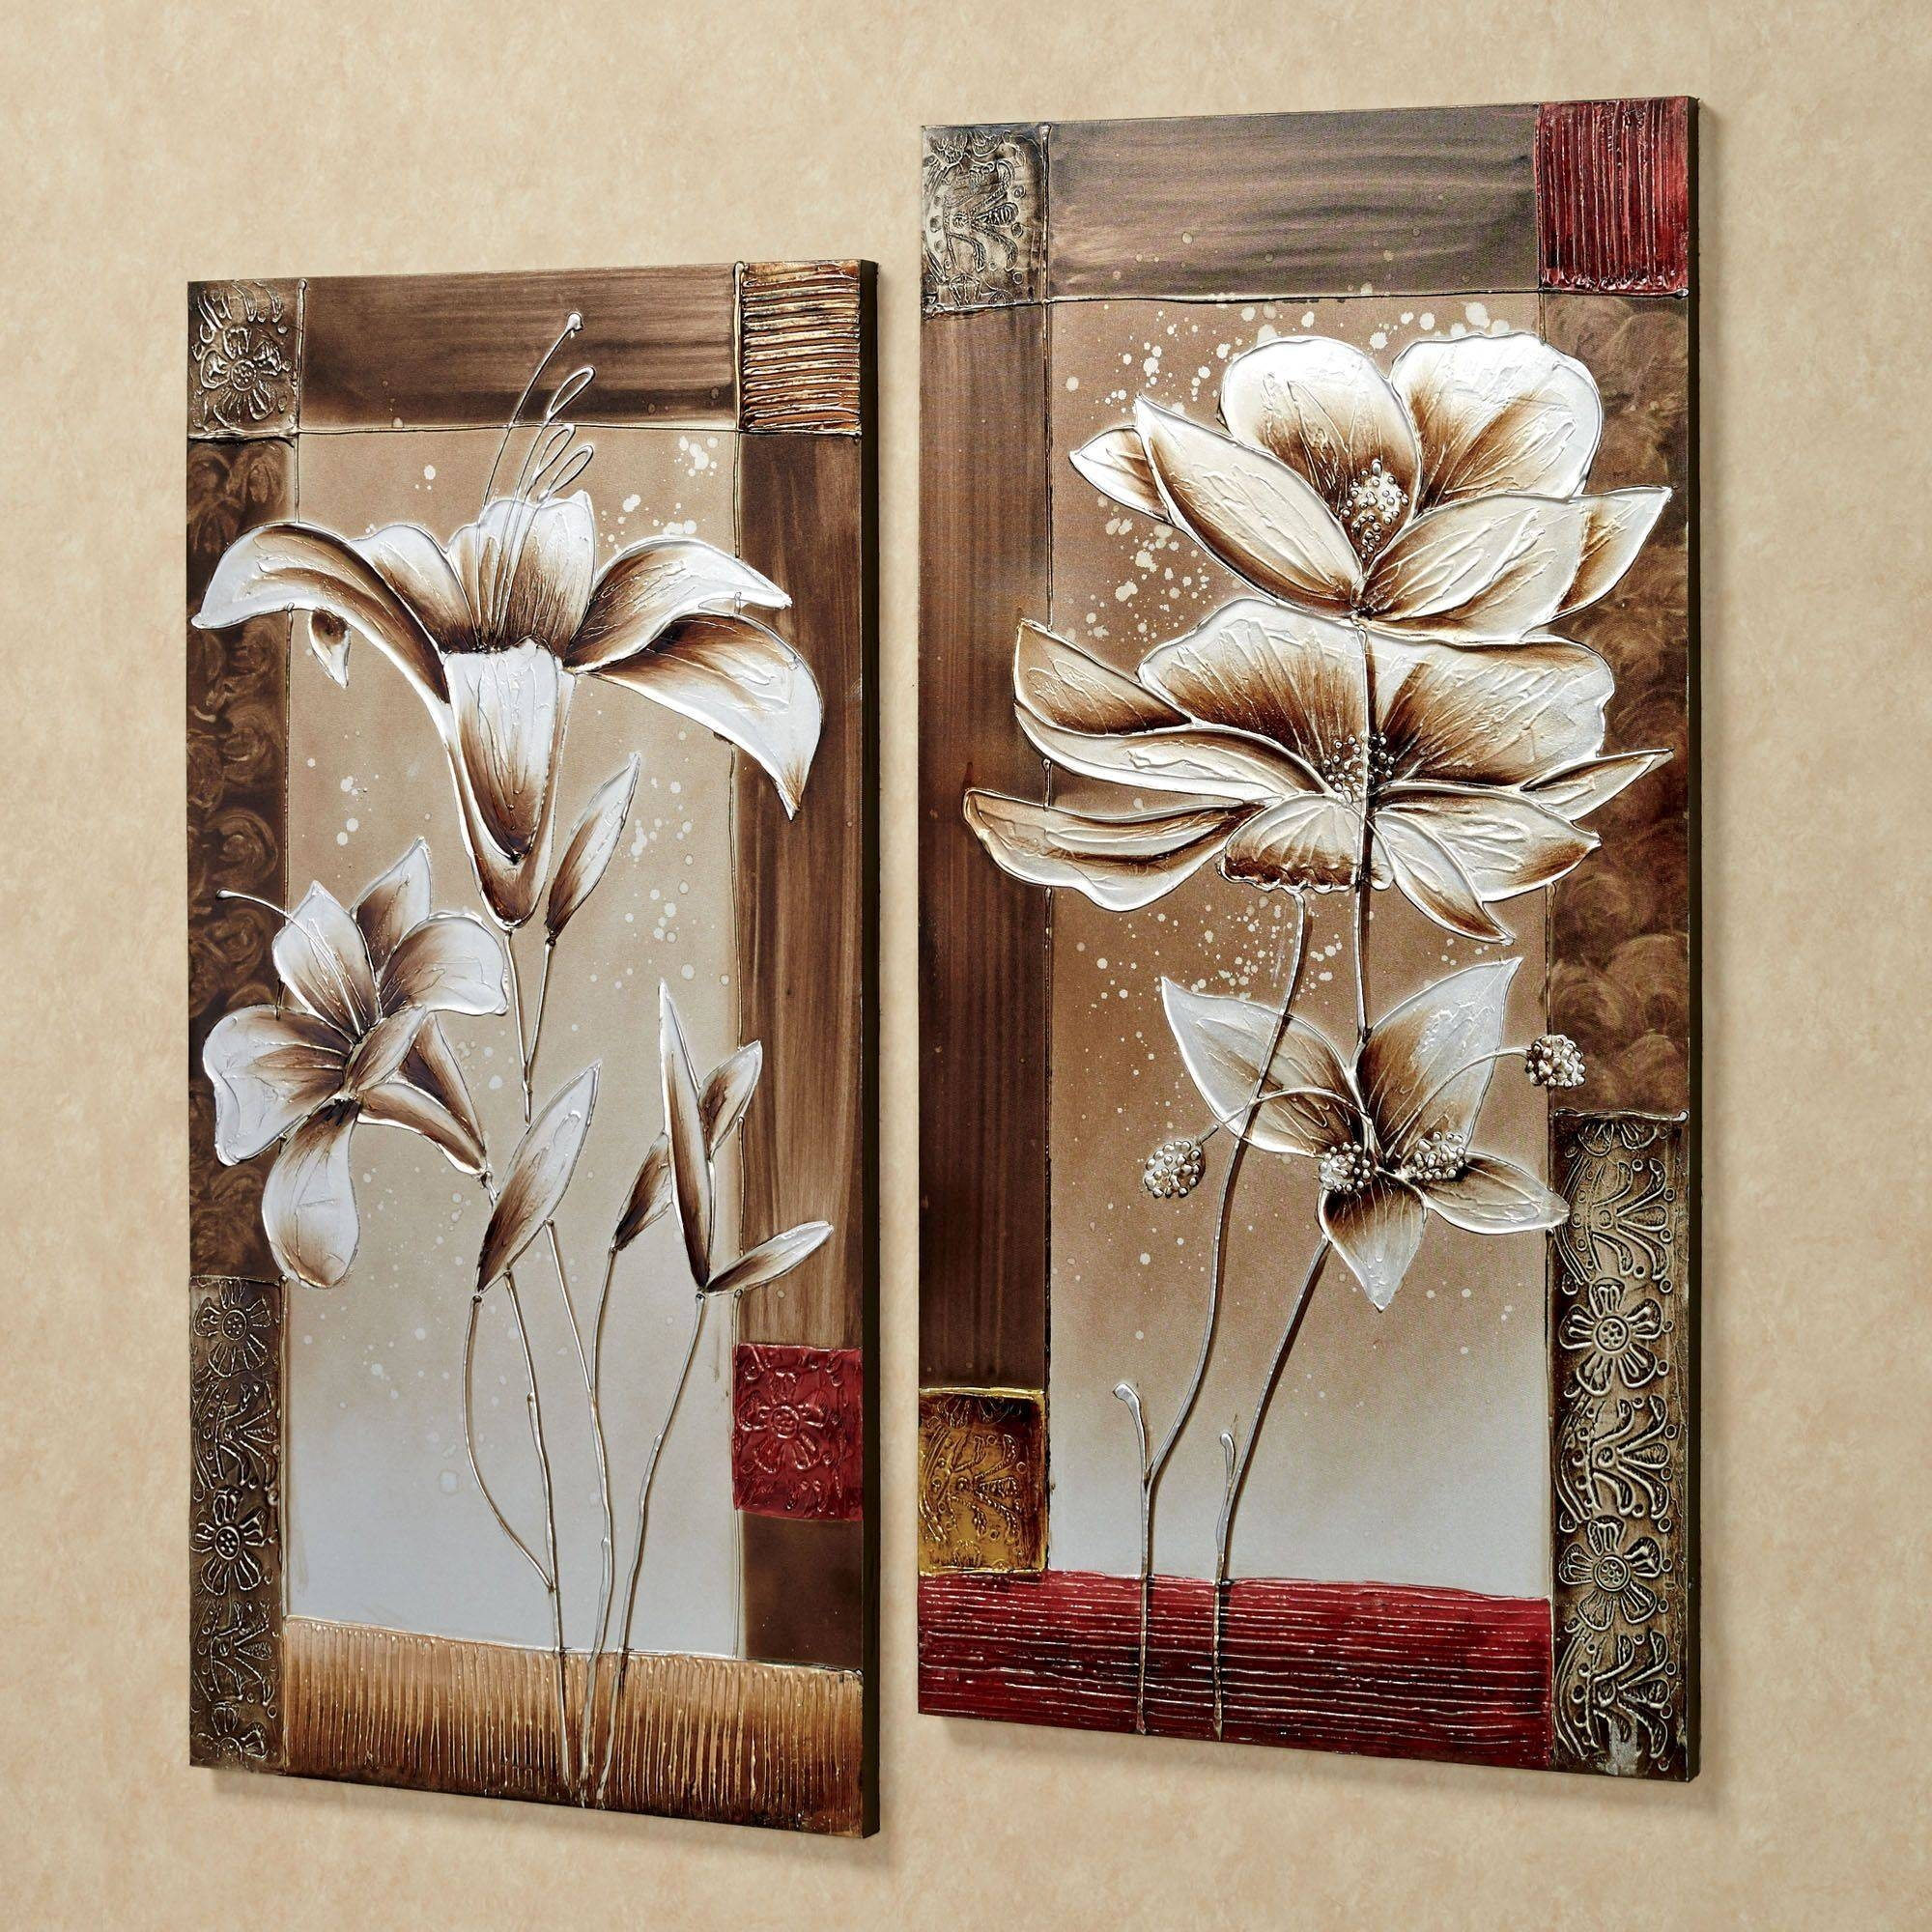 Petals Of Spring Floral Canvas Wall Art Set Intended For Most Up To Date Brown Framed Wall Art (View 8 of 20)